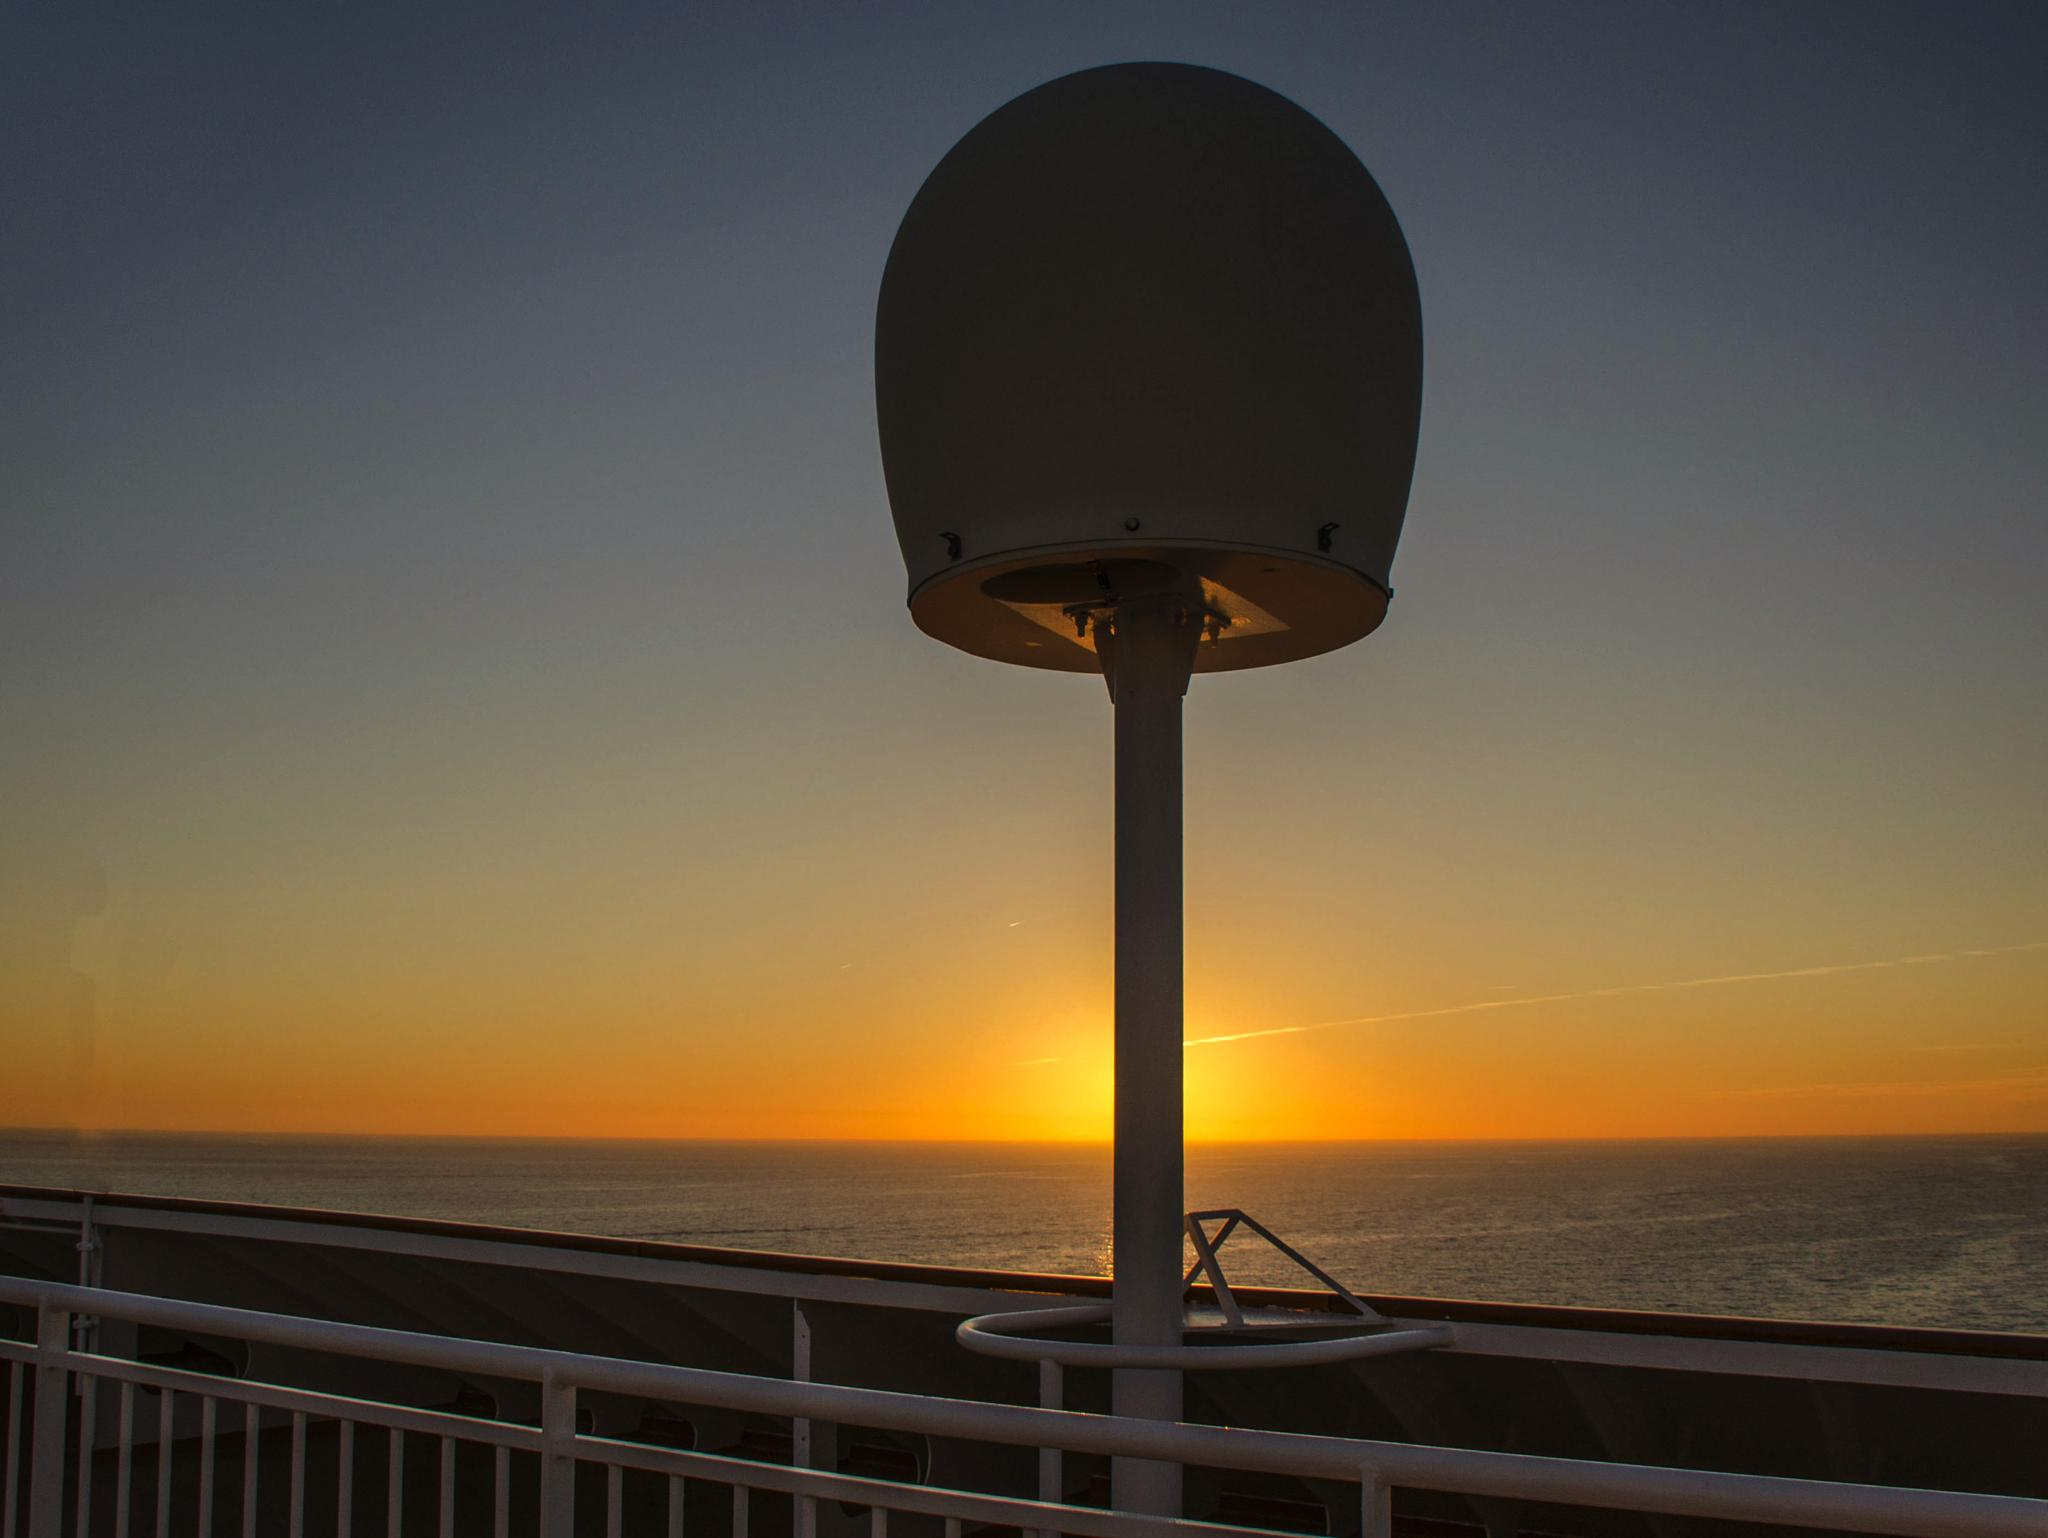 Sunset At Sea. by Pat kehoe